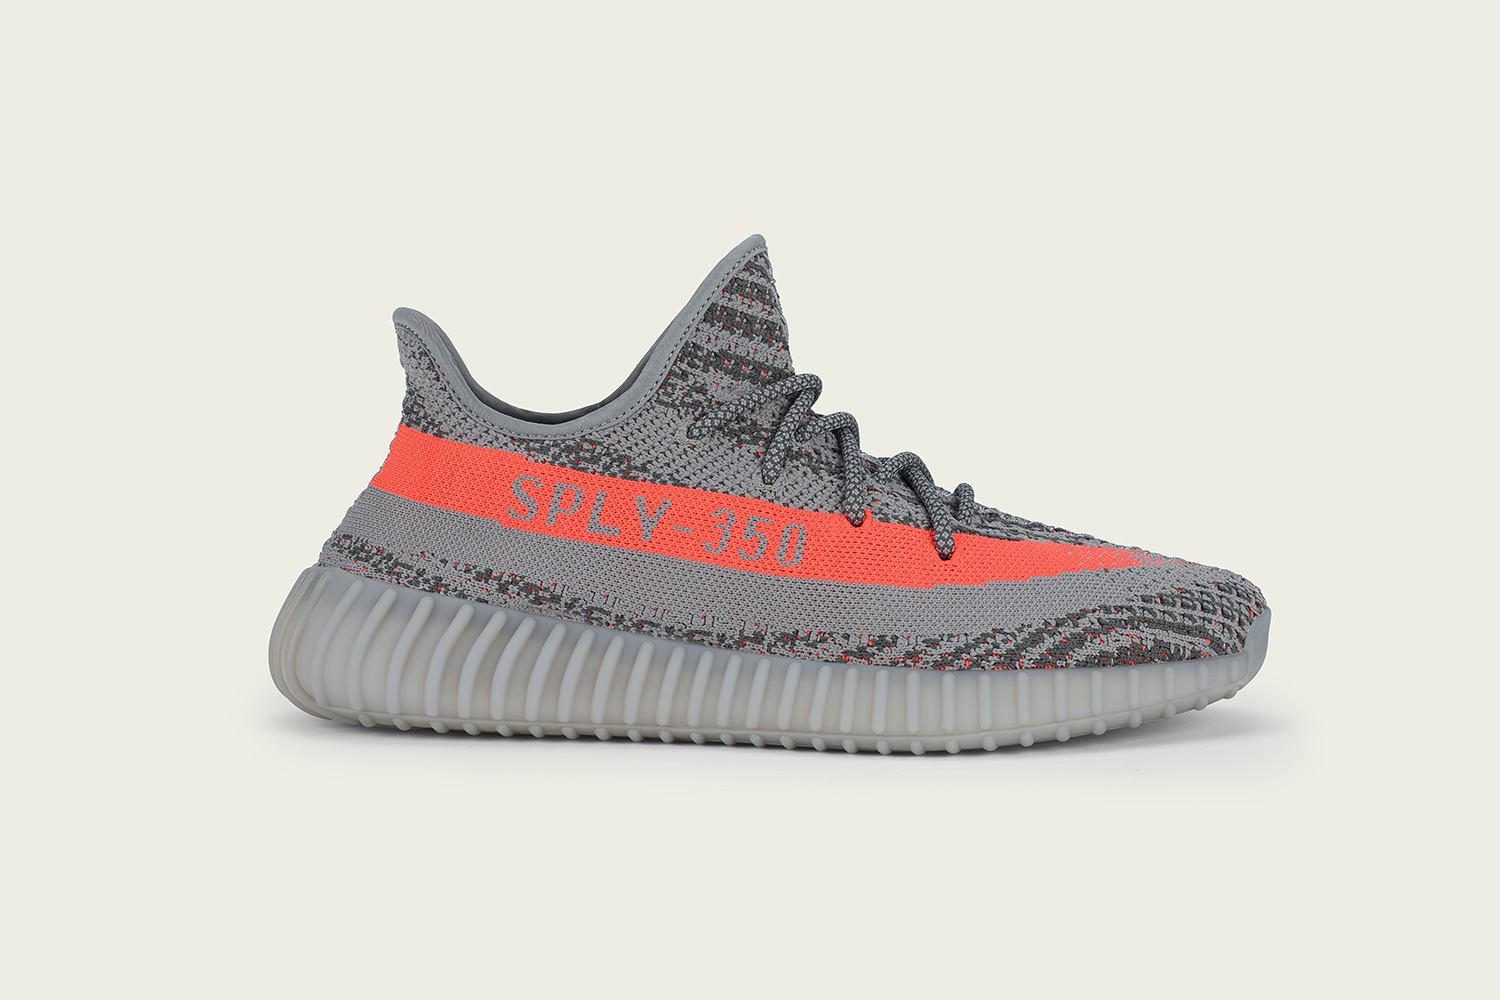 the latest a881f 1aee4 adidas Yeezy 350 Boost V2 Steel Grey